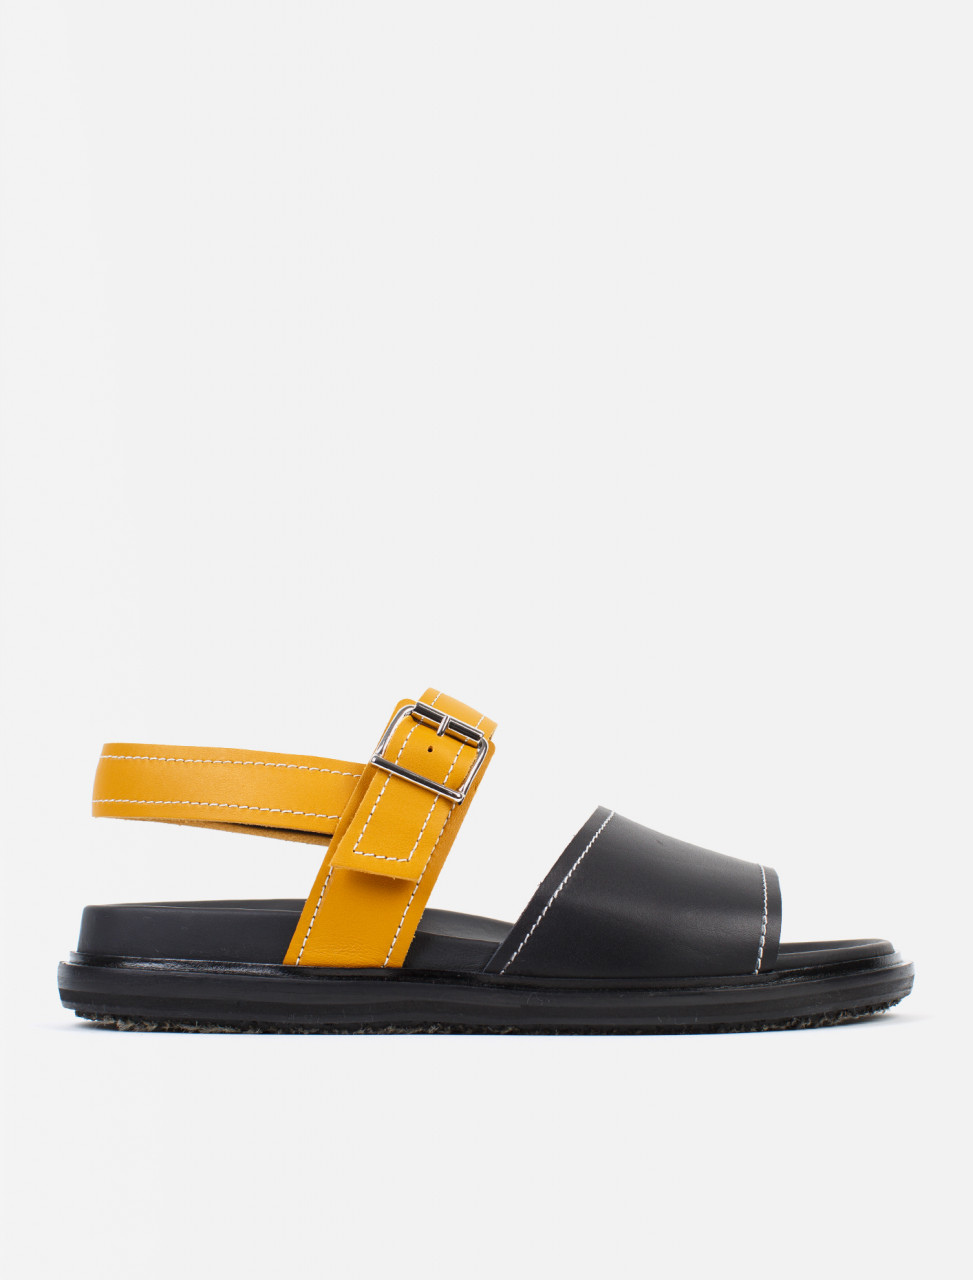 Sandals in Black and Honey